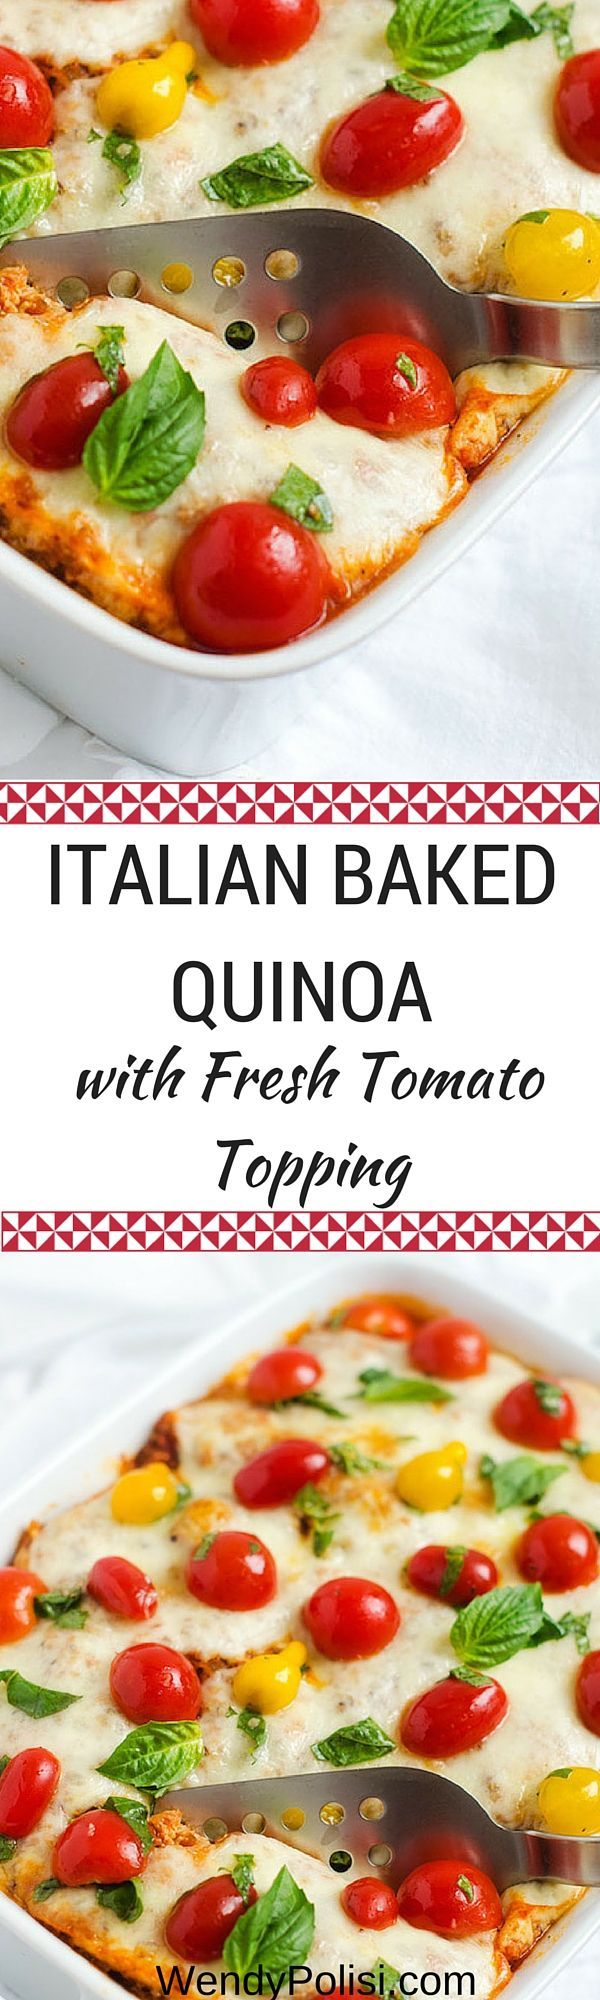 Italian Baked Quinoa with Fresh Tomato Topping - WendyPolisi.com